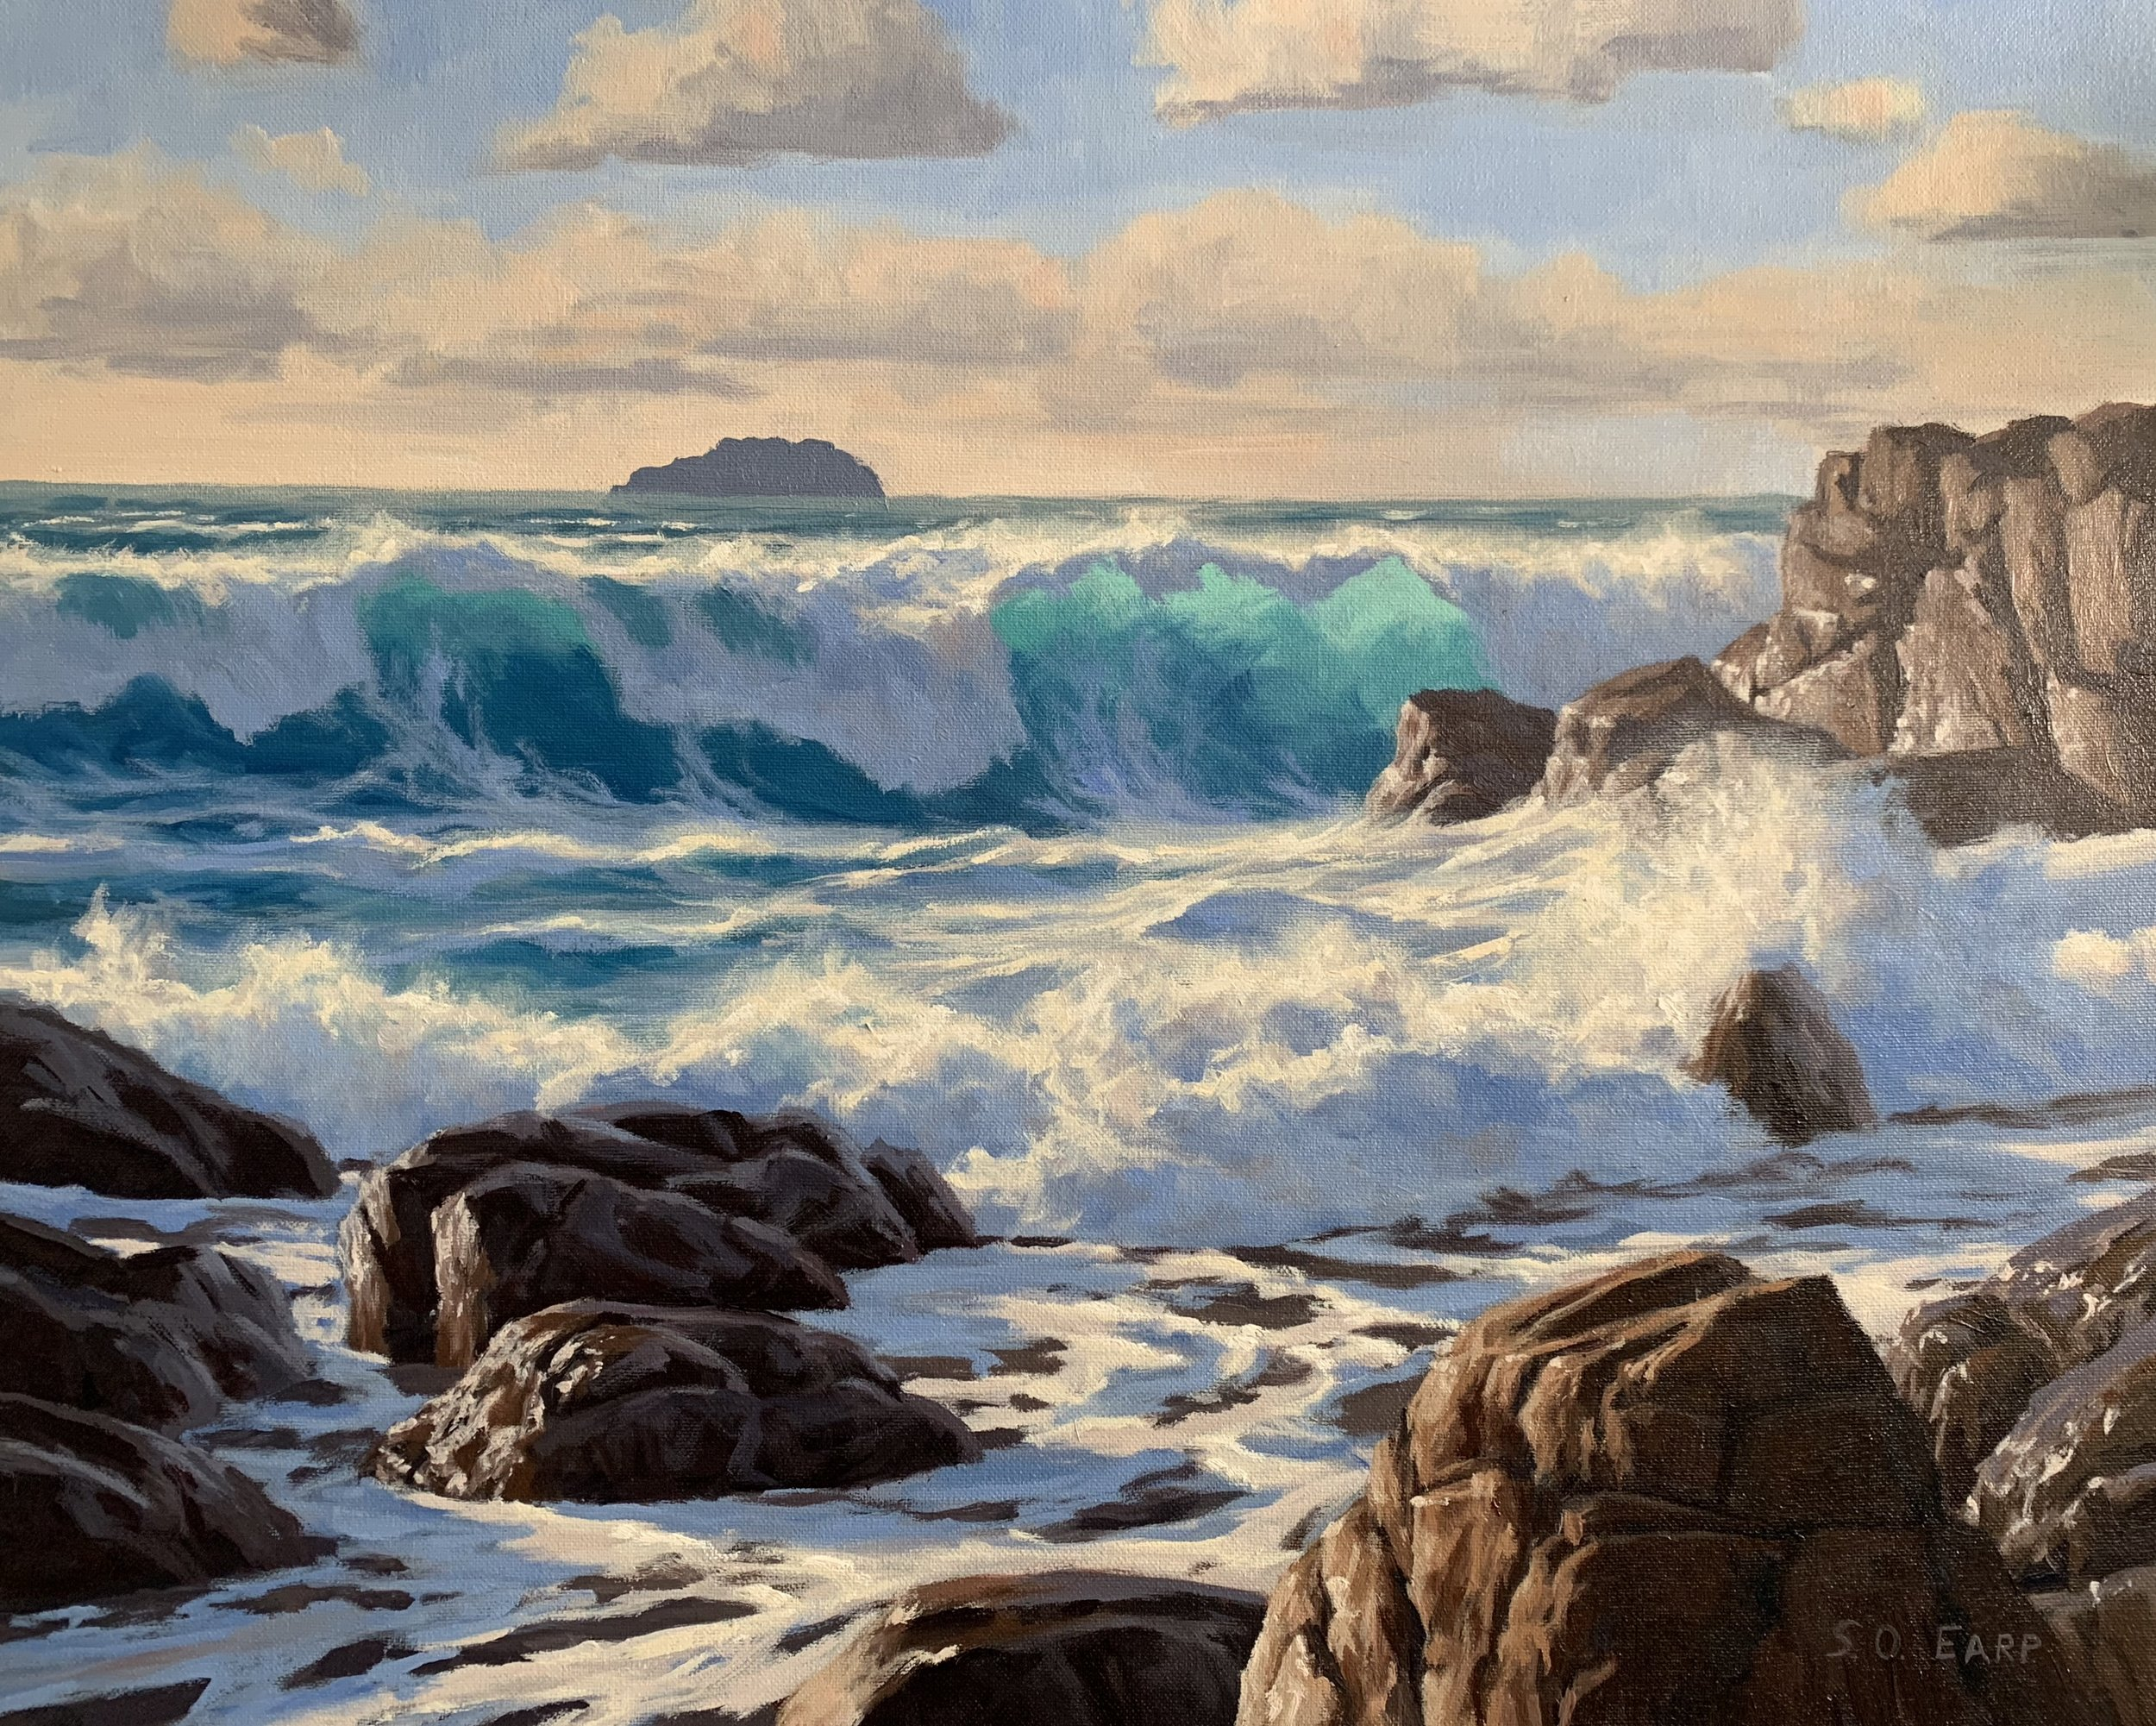 Wild Sea - Guernsey - seascape oil painting - Samuel Earp.jpg